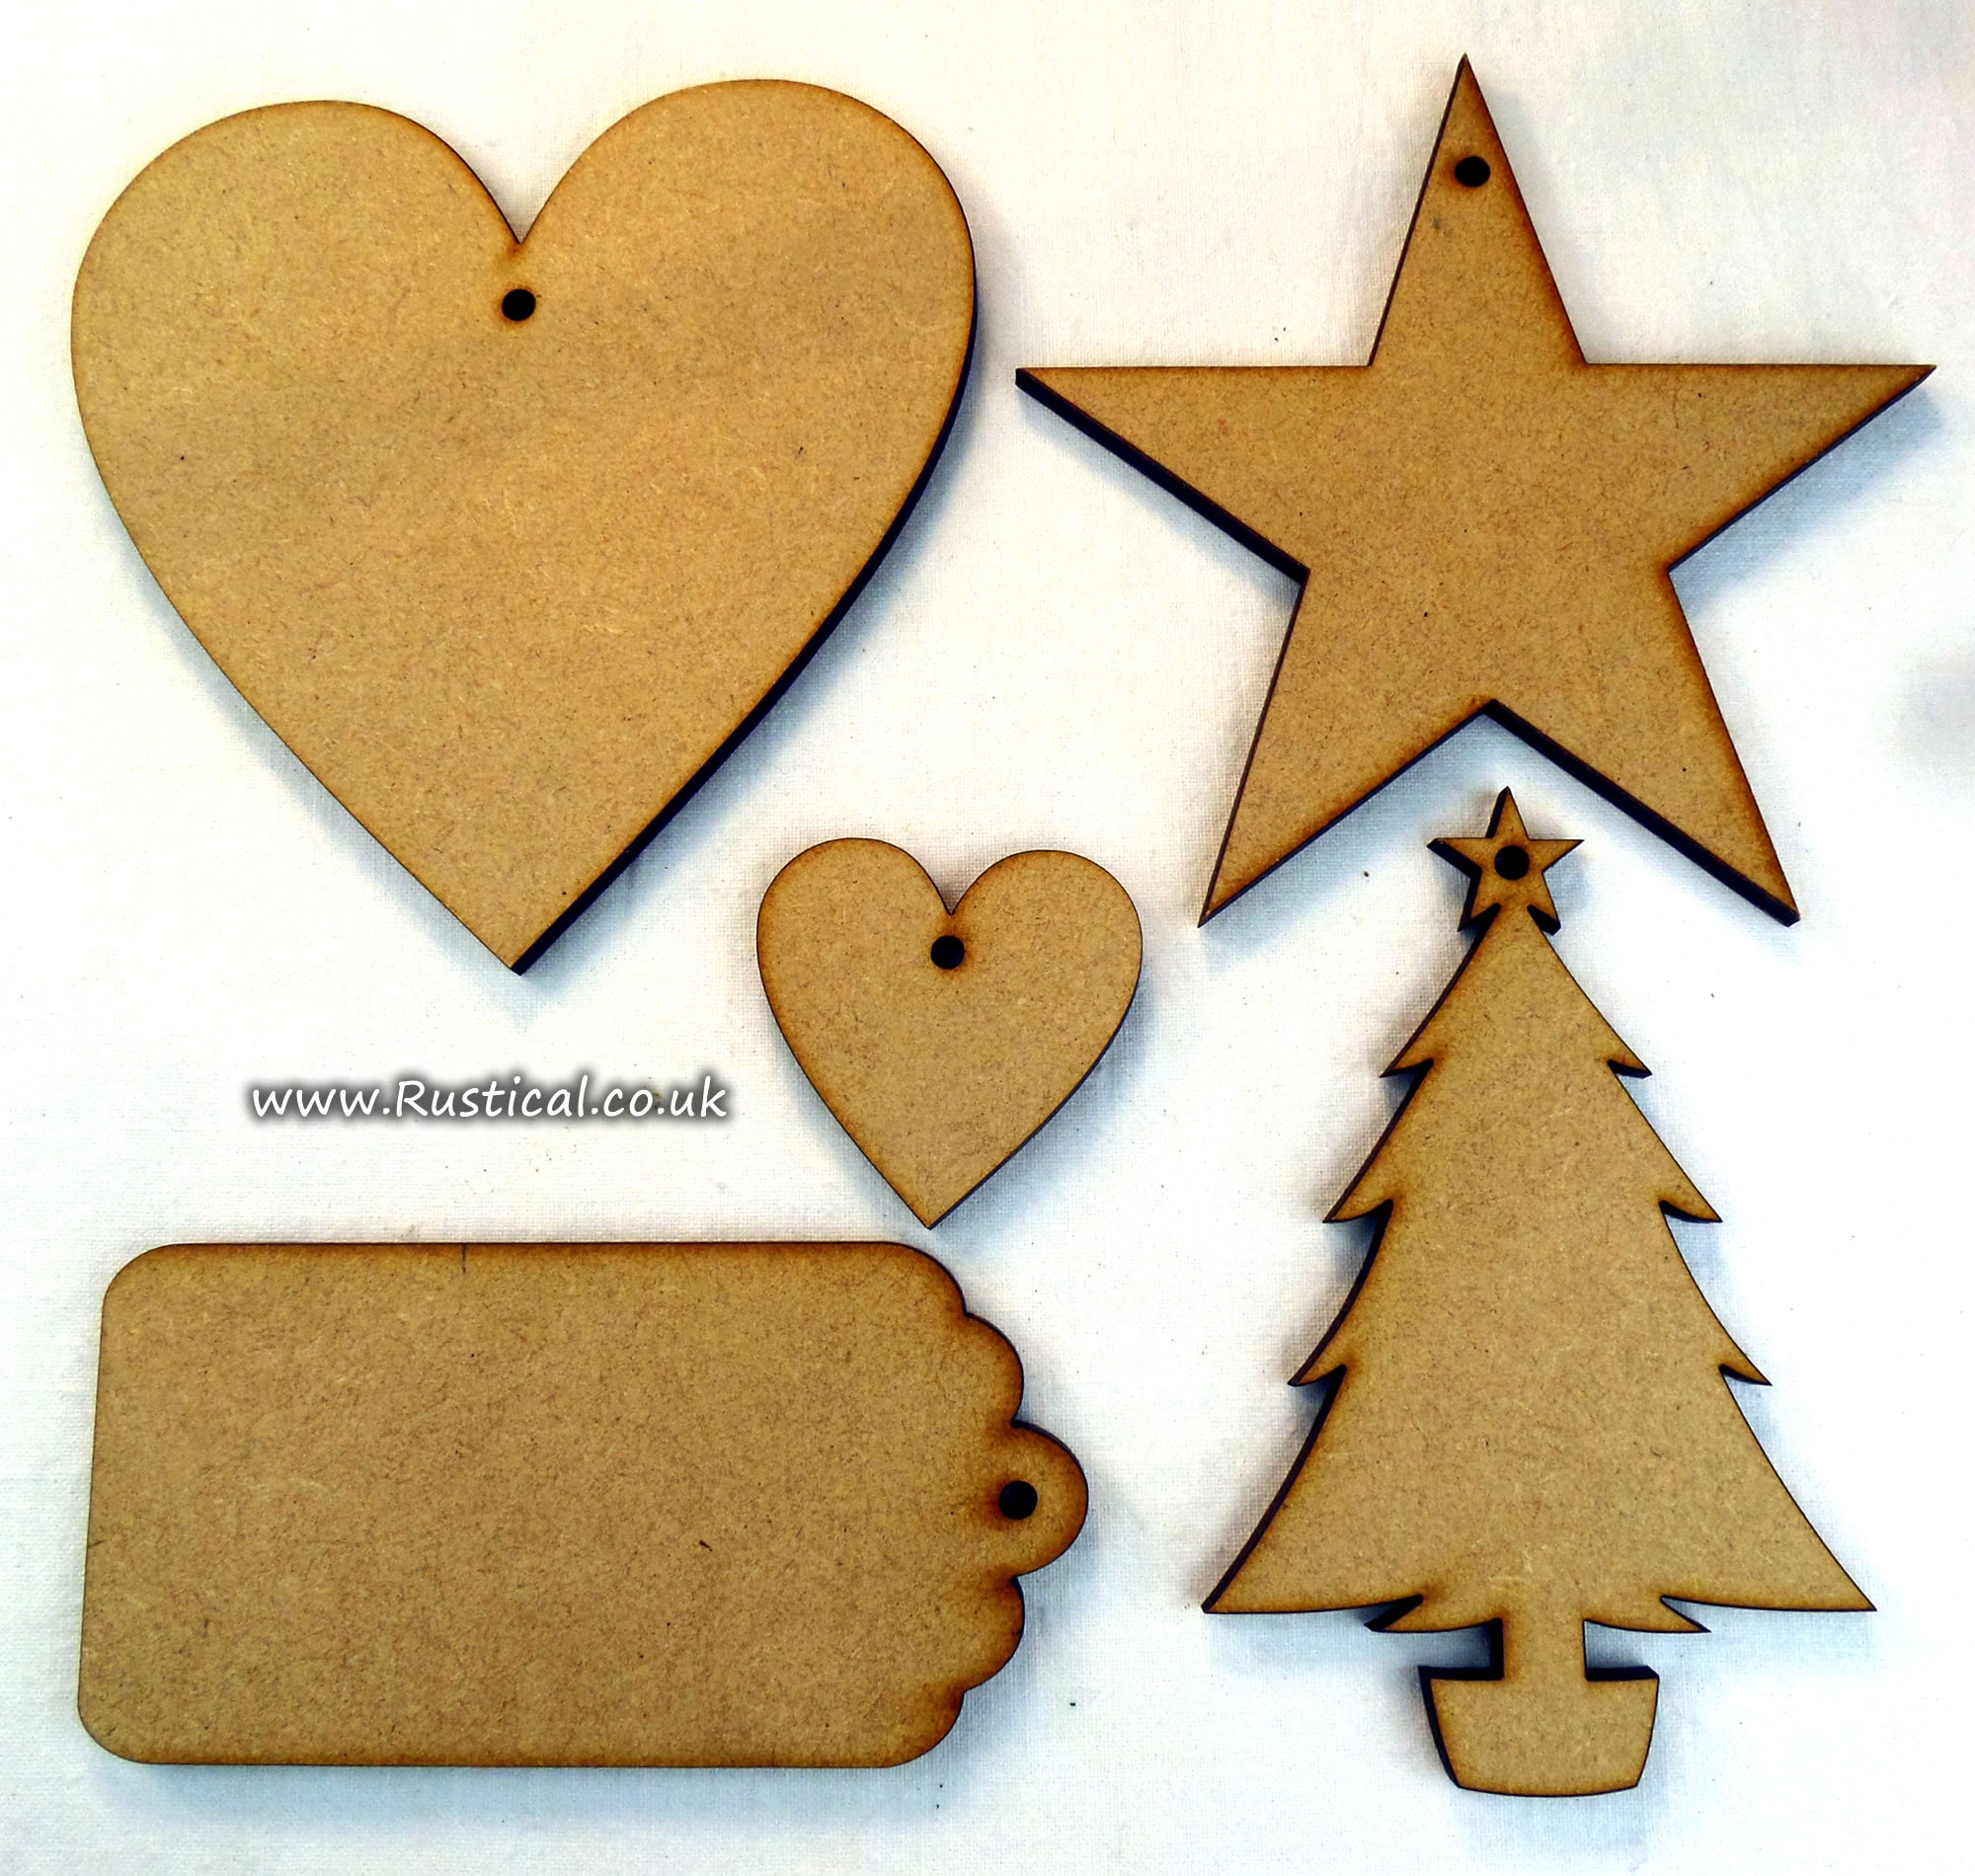 mdf shapes for craft projects or shop price tags